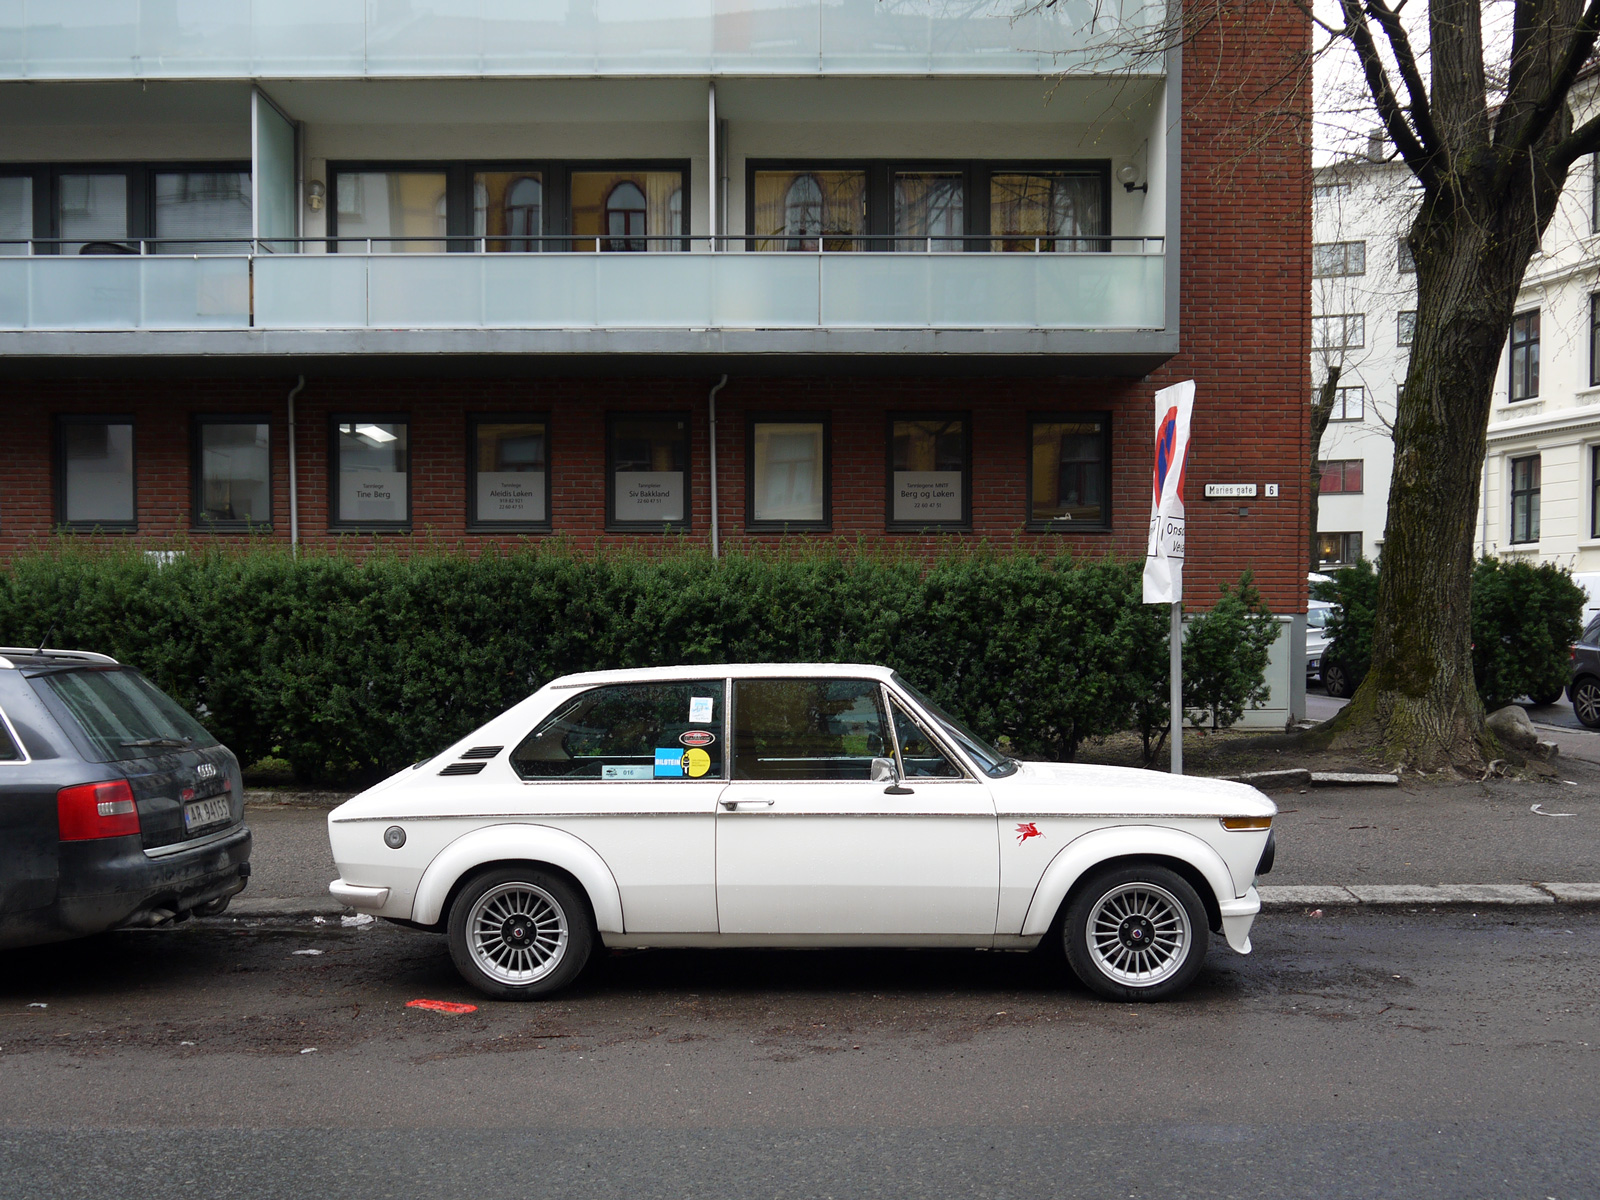 1972 Bmw 2000 Touring E10 Station wagon Oslo old parked cars